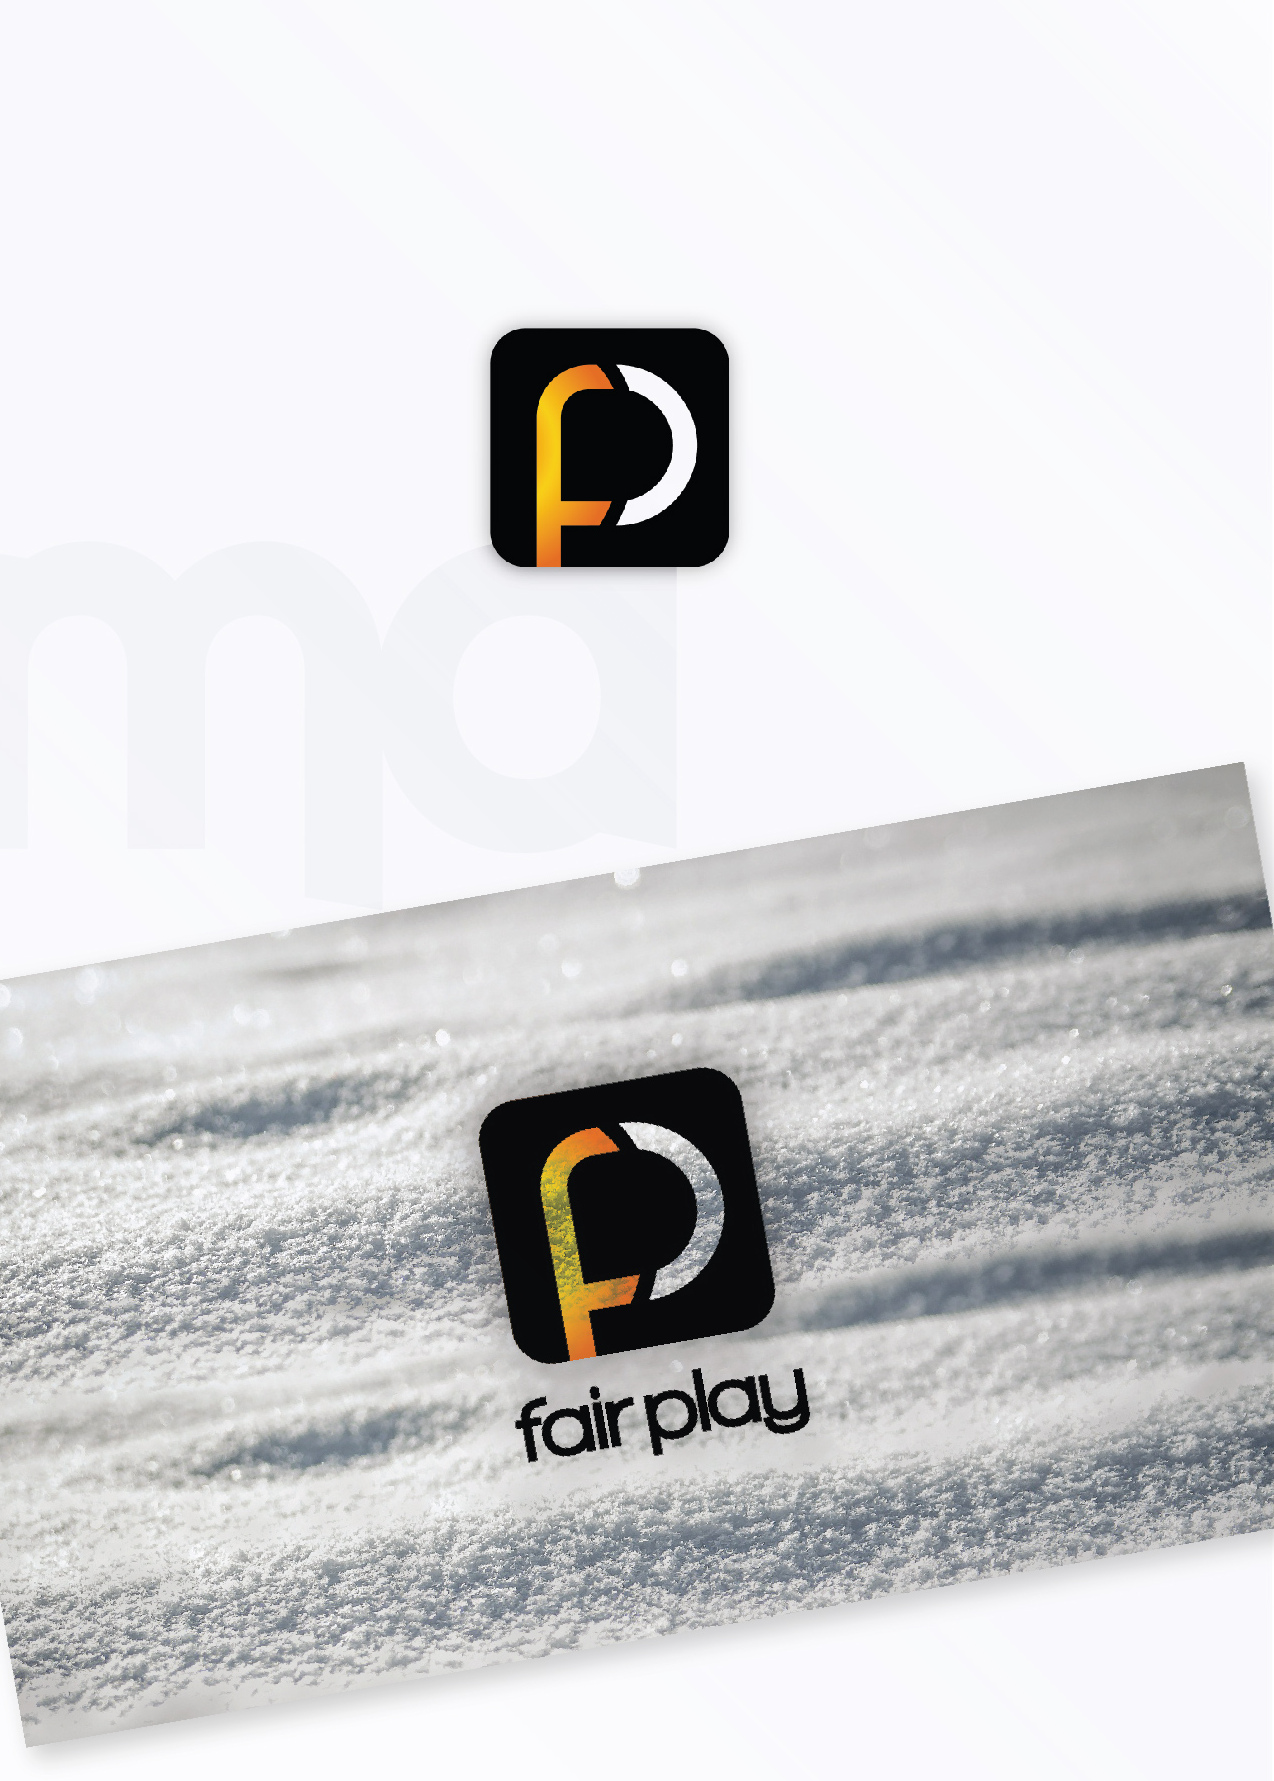 fair play dating Fair-play fair play christian dating meet quality christian singles in fair play, south carolina christian dating for free (cdff) is the #1 online christian service for meeting quality christian singles in fair play, south carolina basic search advanced search user search.